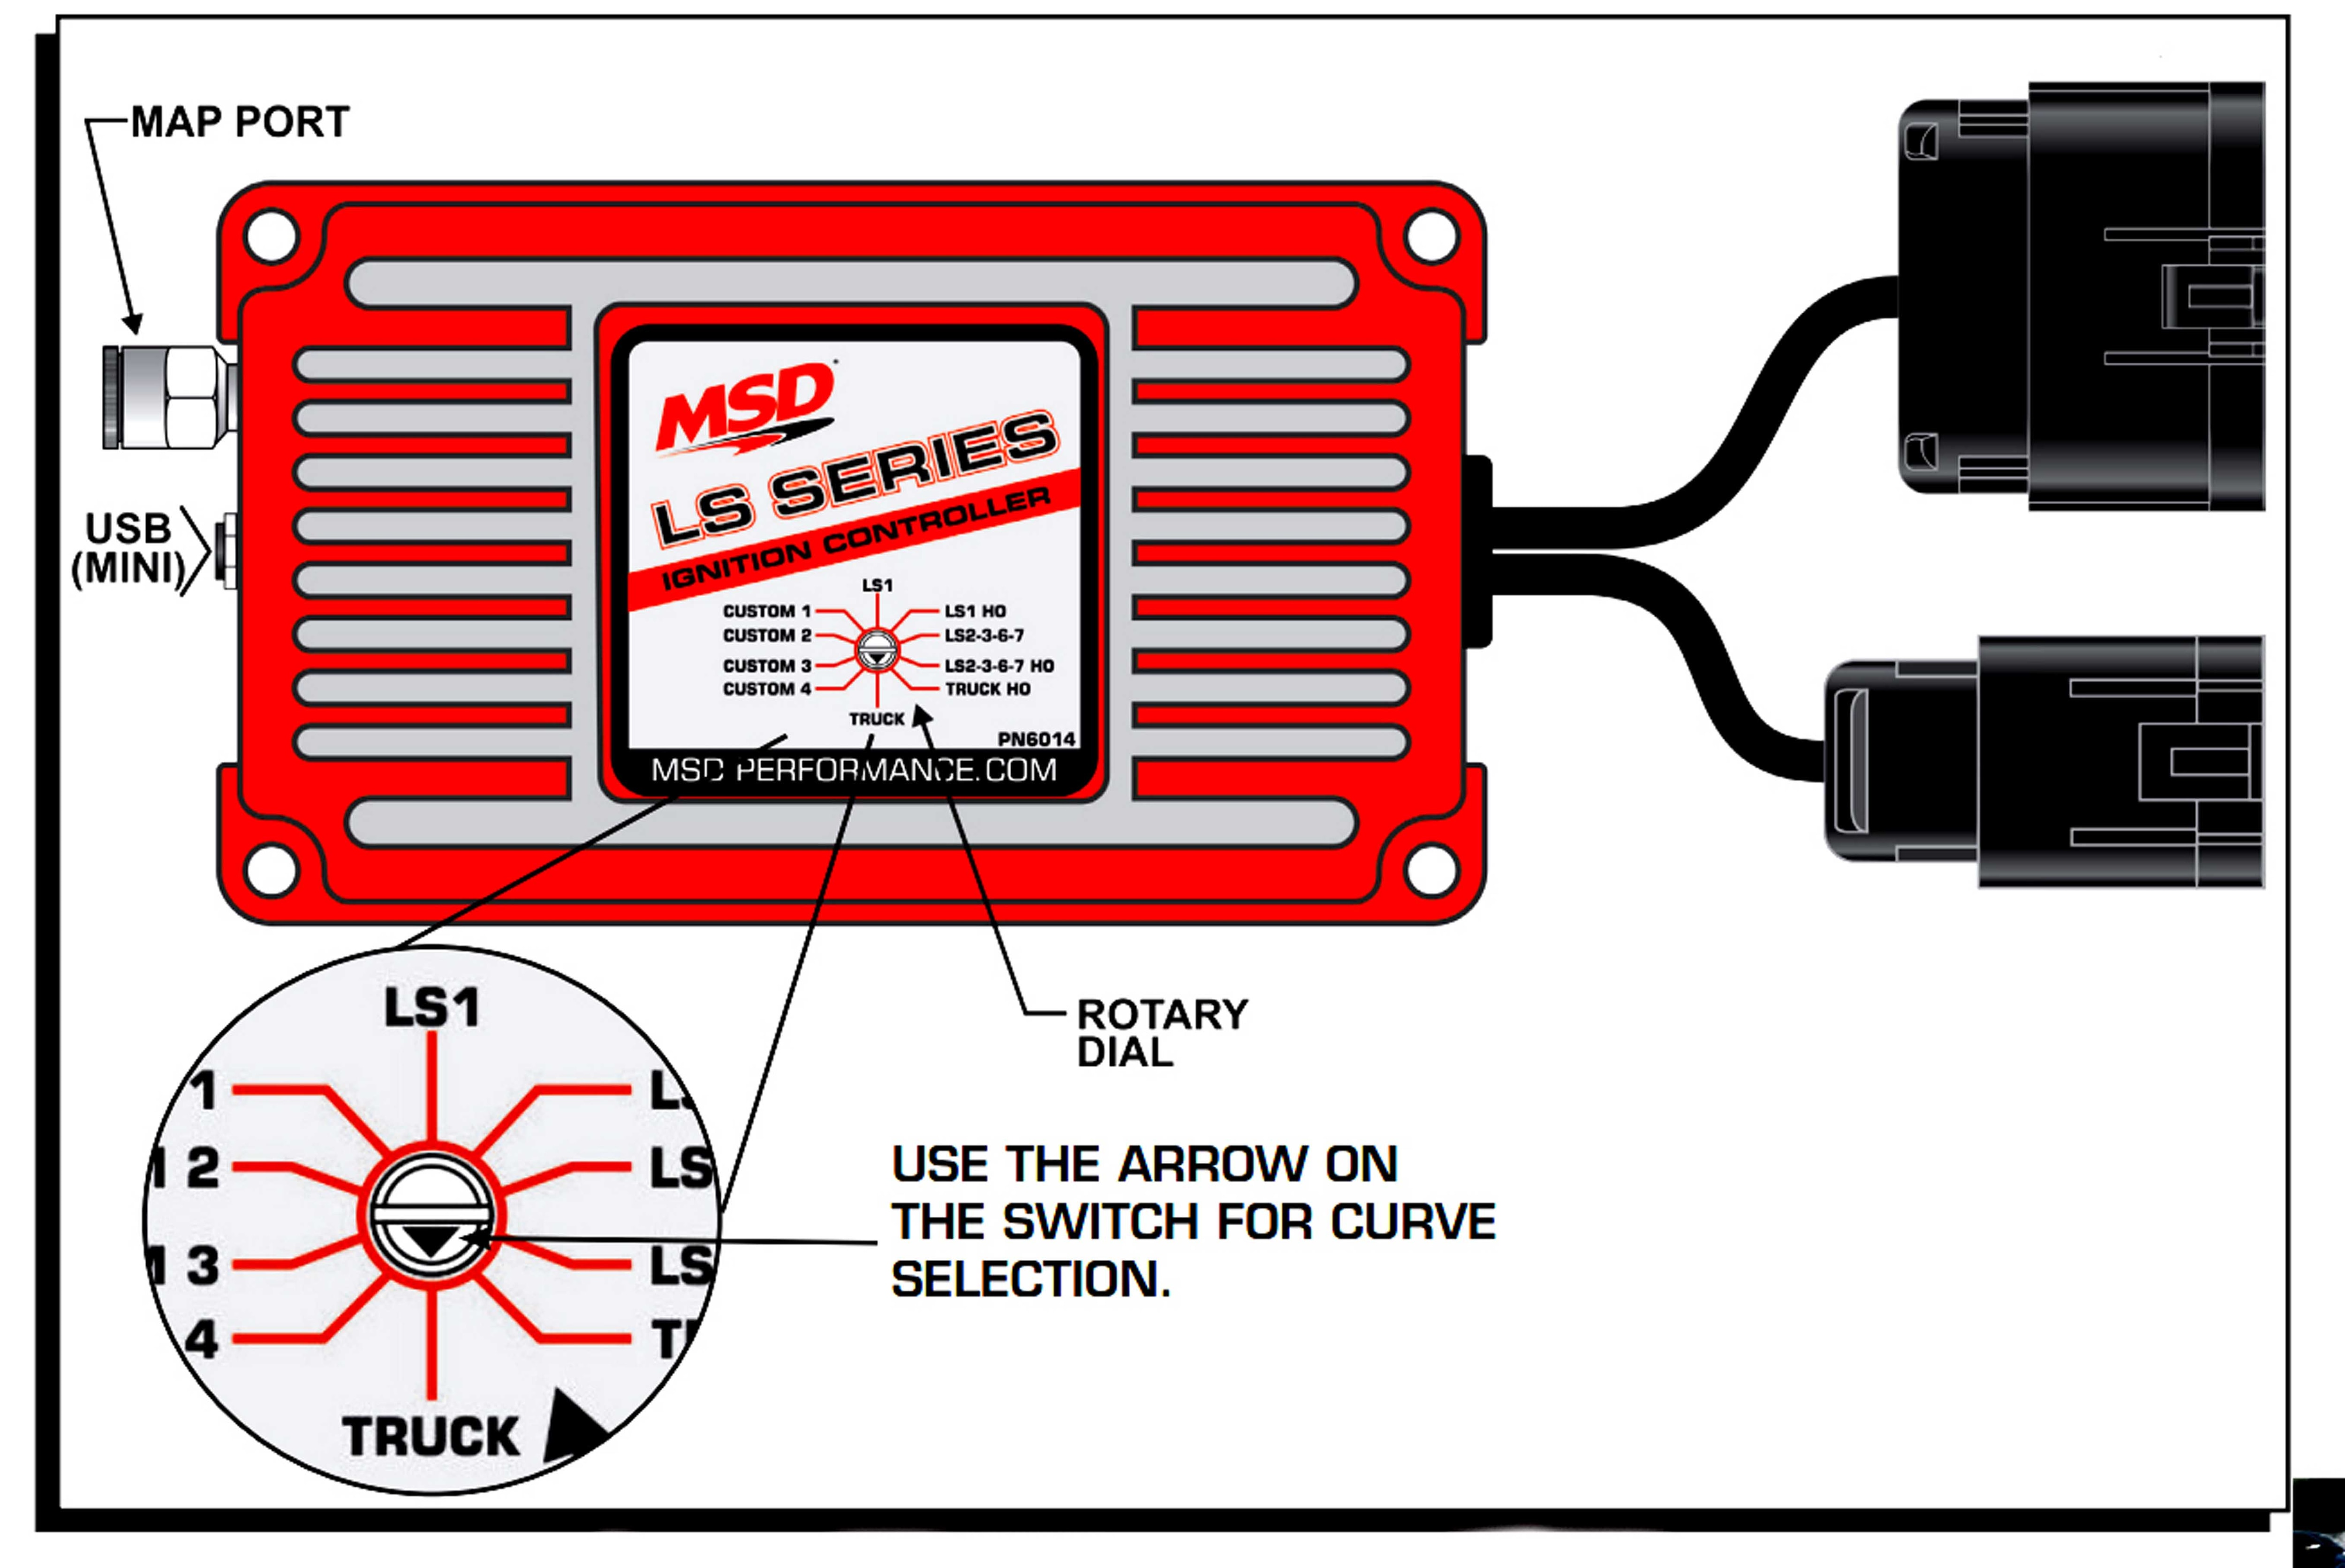 small resolution of msd ignition controller for ls engines has huge feature set hotthe ho curves generally add 4